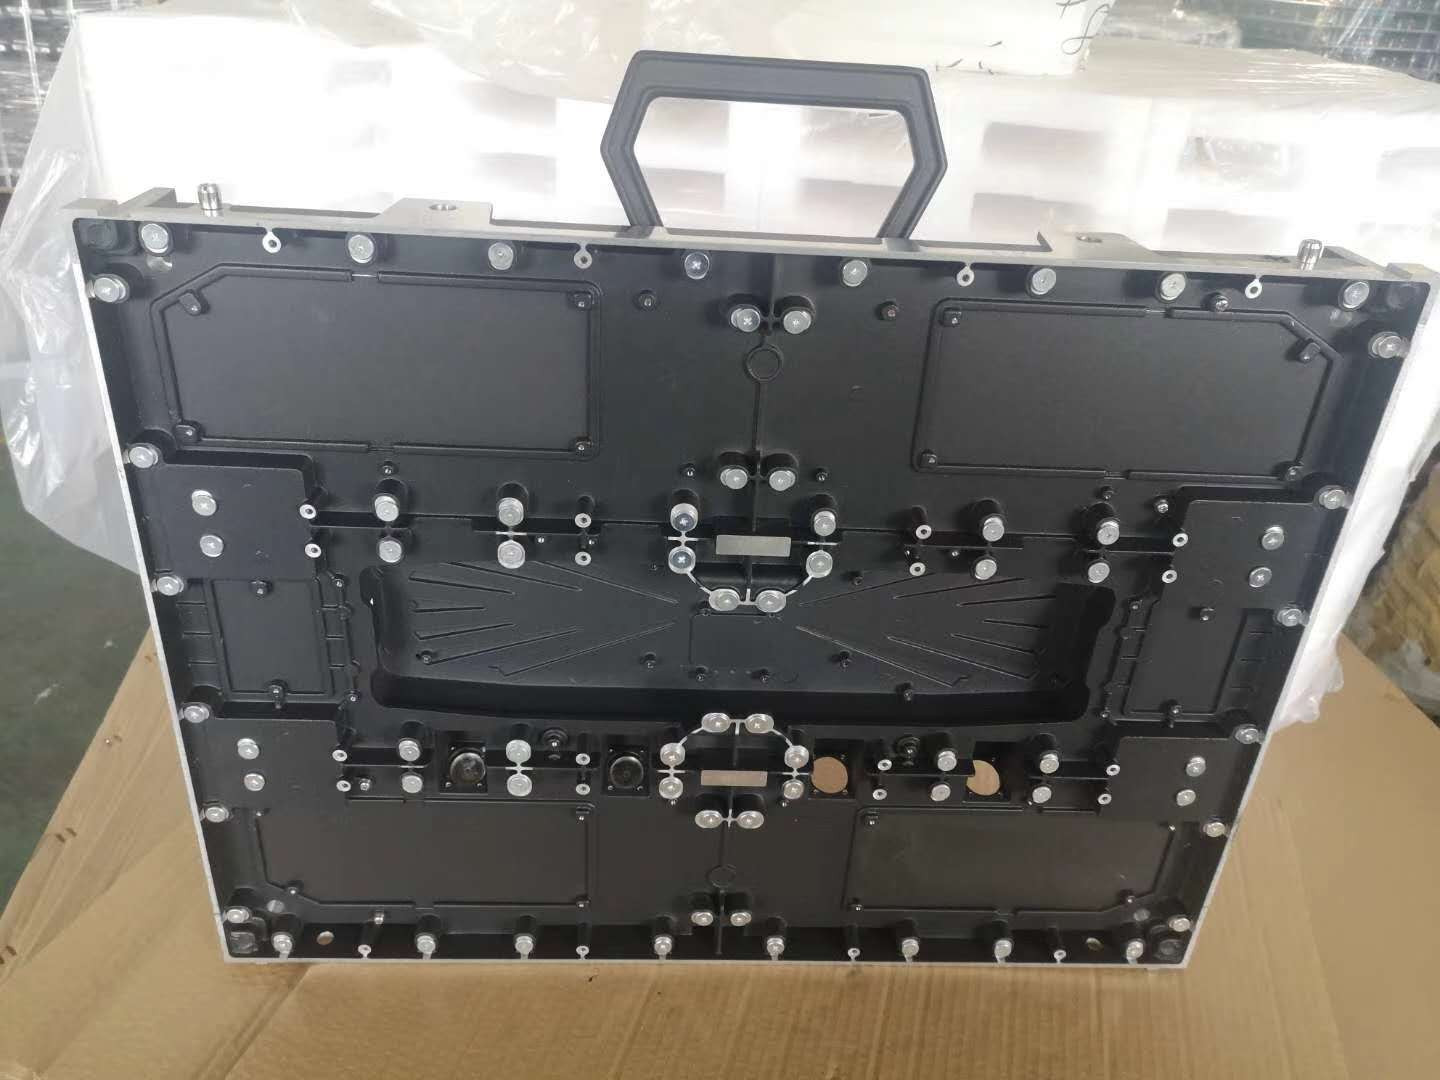 640*480mm front maintenance led cabinet.